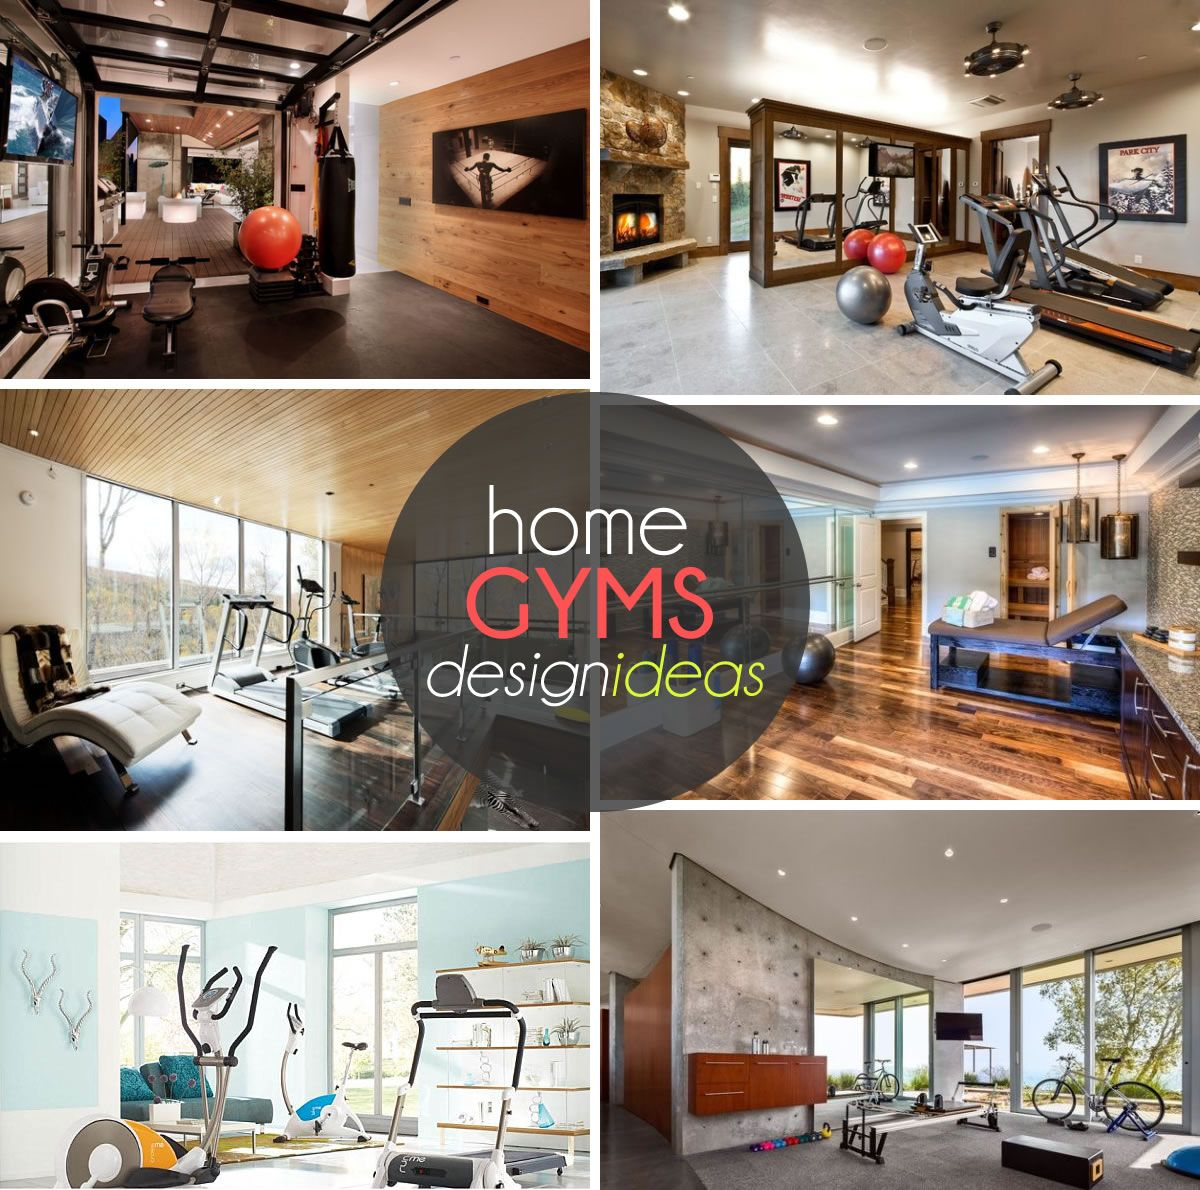 Home Design Basement Ideas: Gym Interior, Fitness Design And